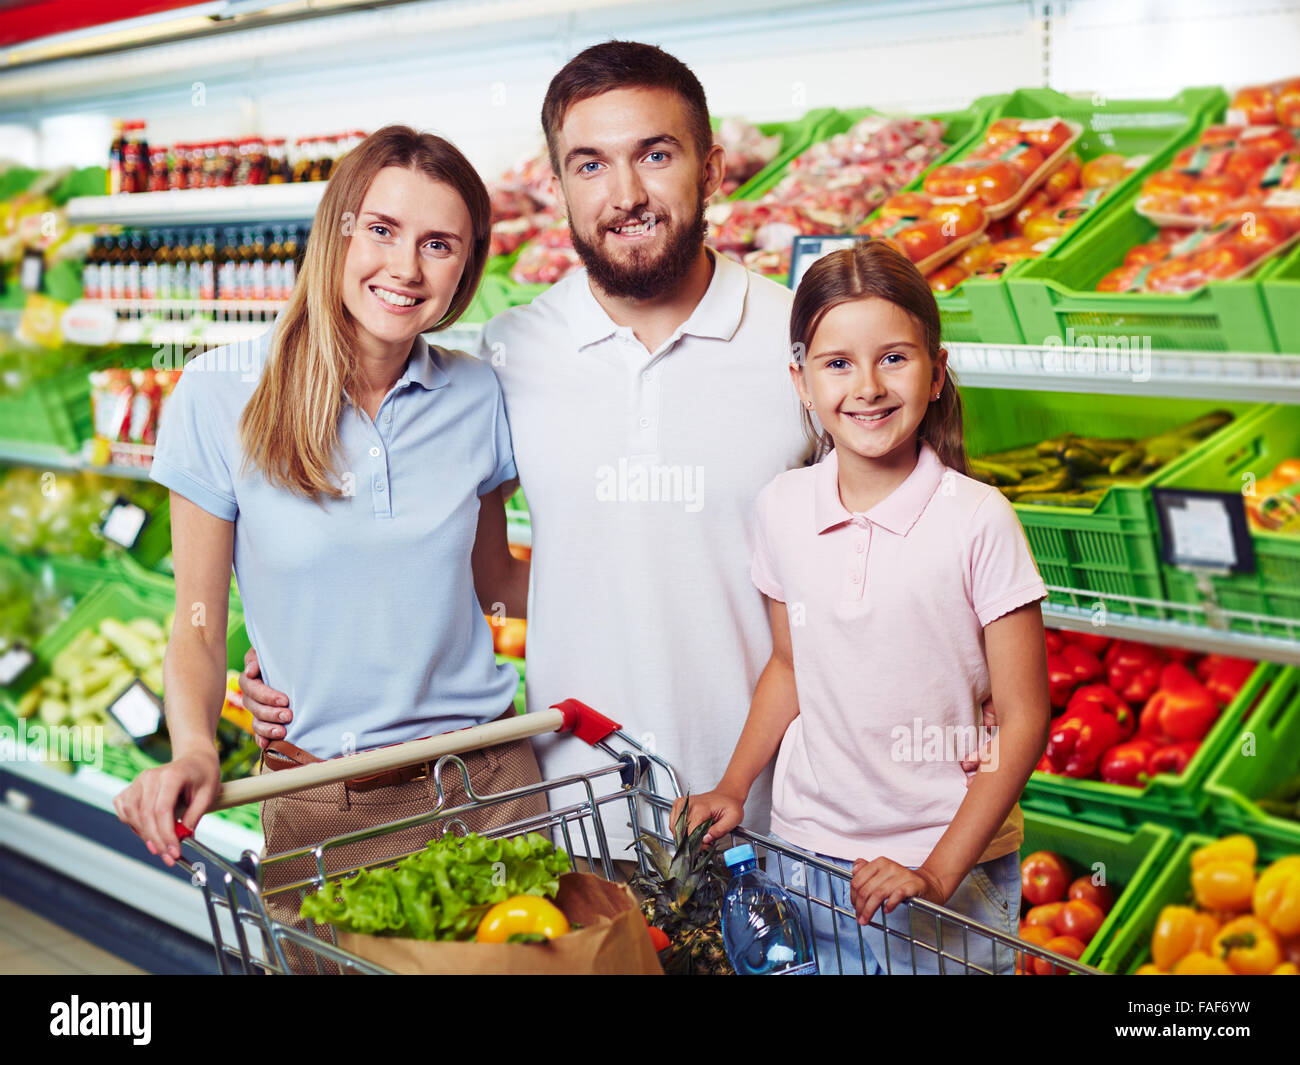 Family of three shopping in grocery supermarket - Stock Image